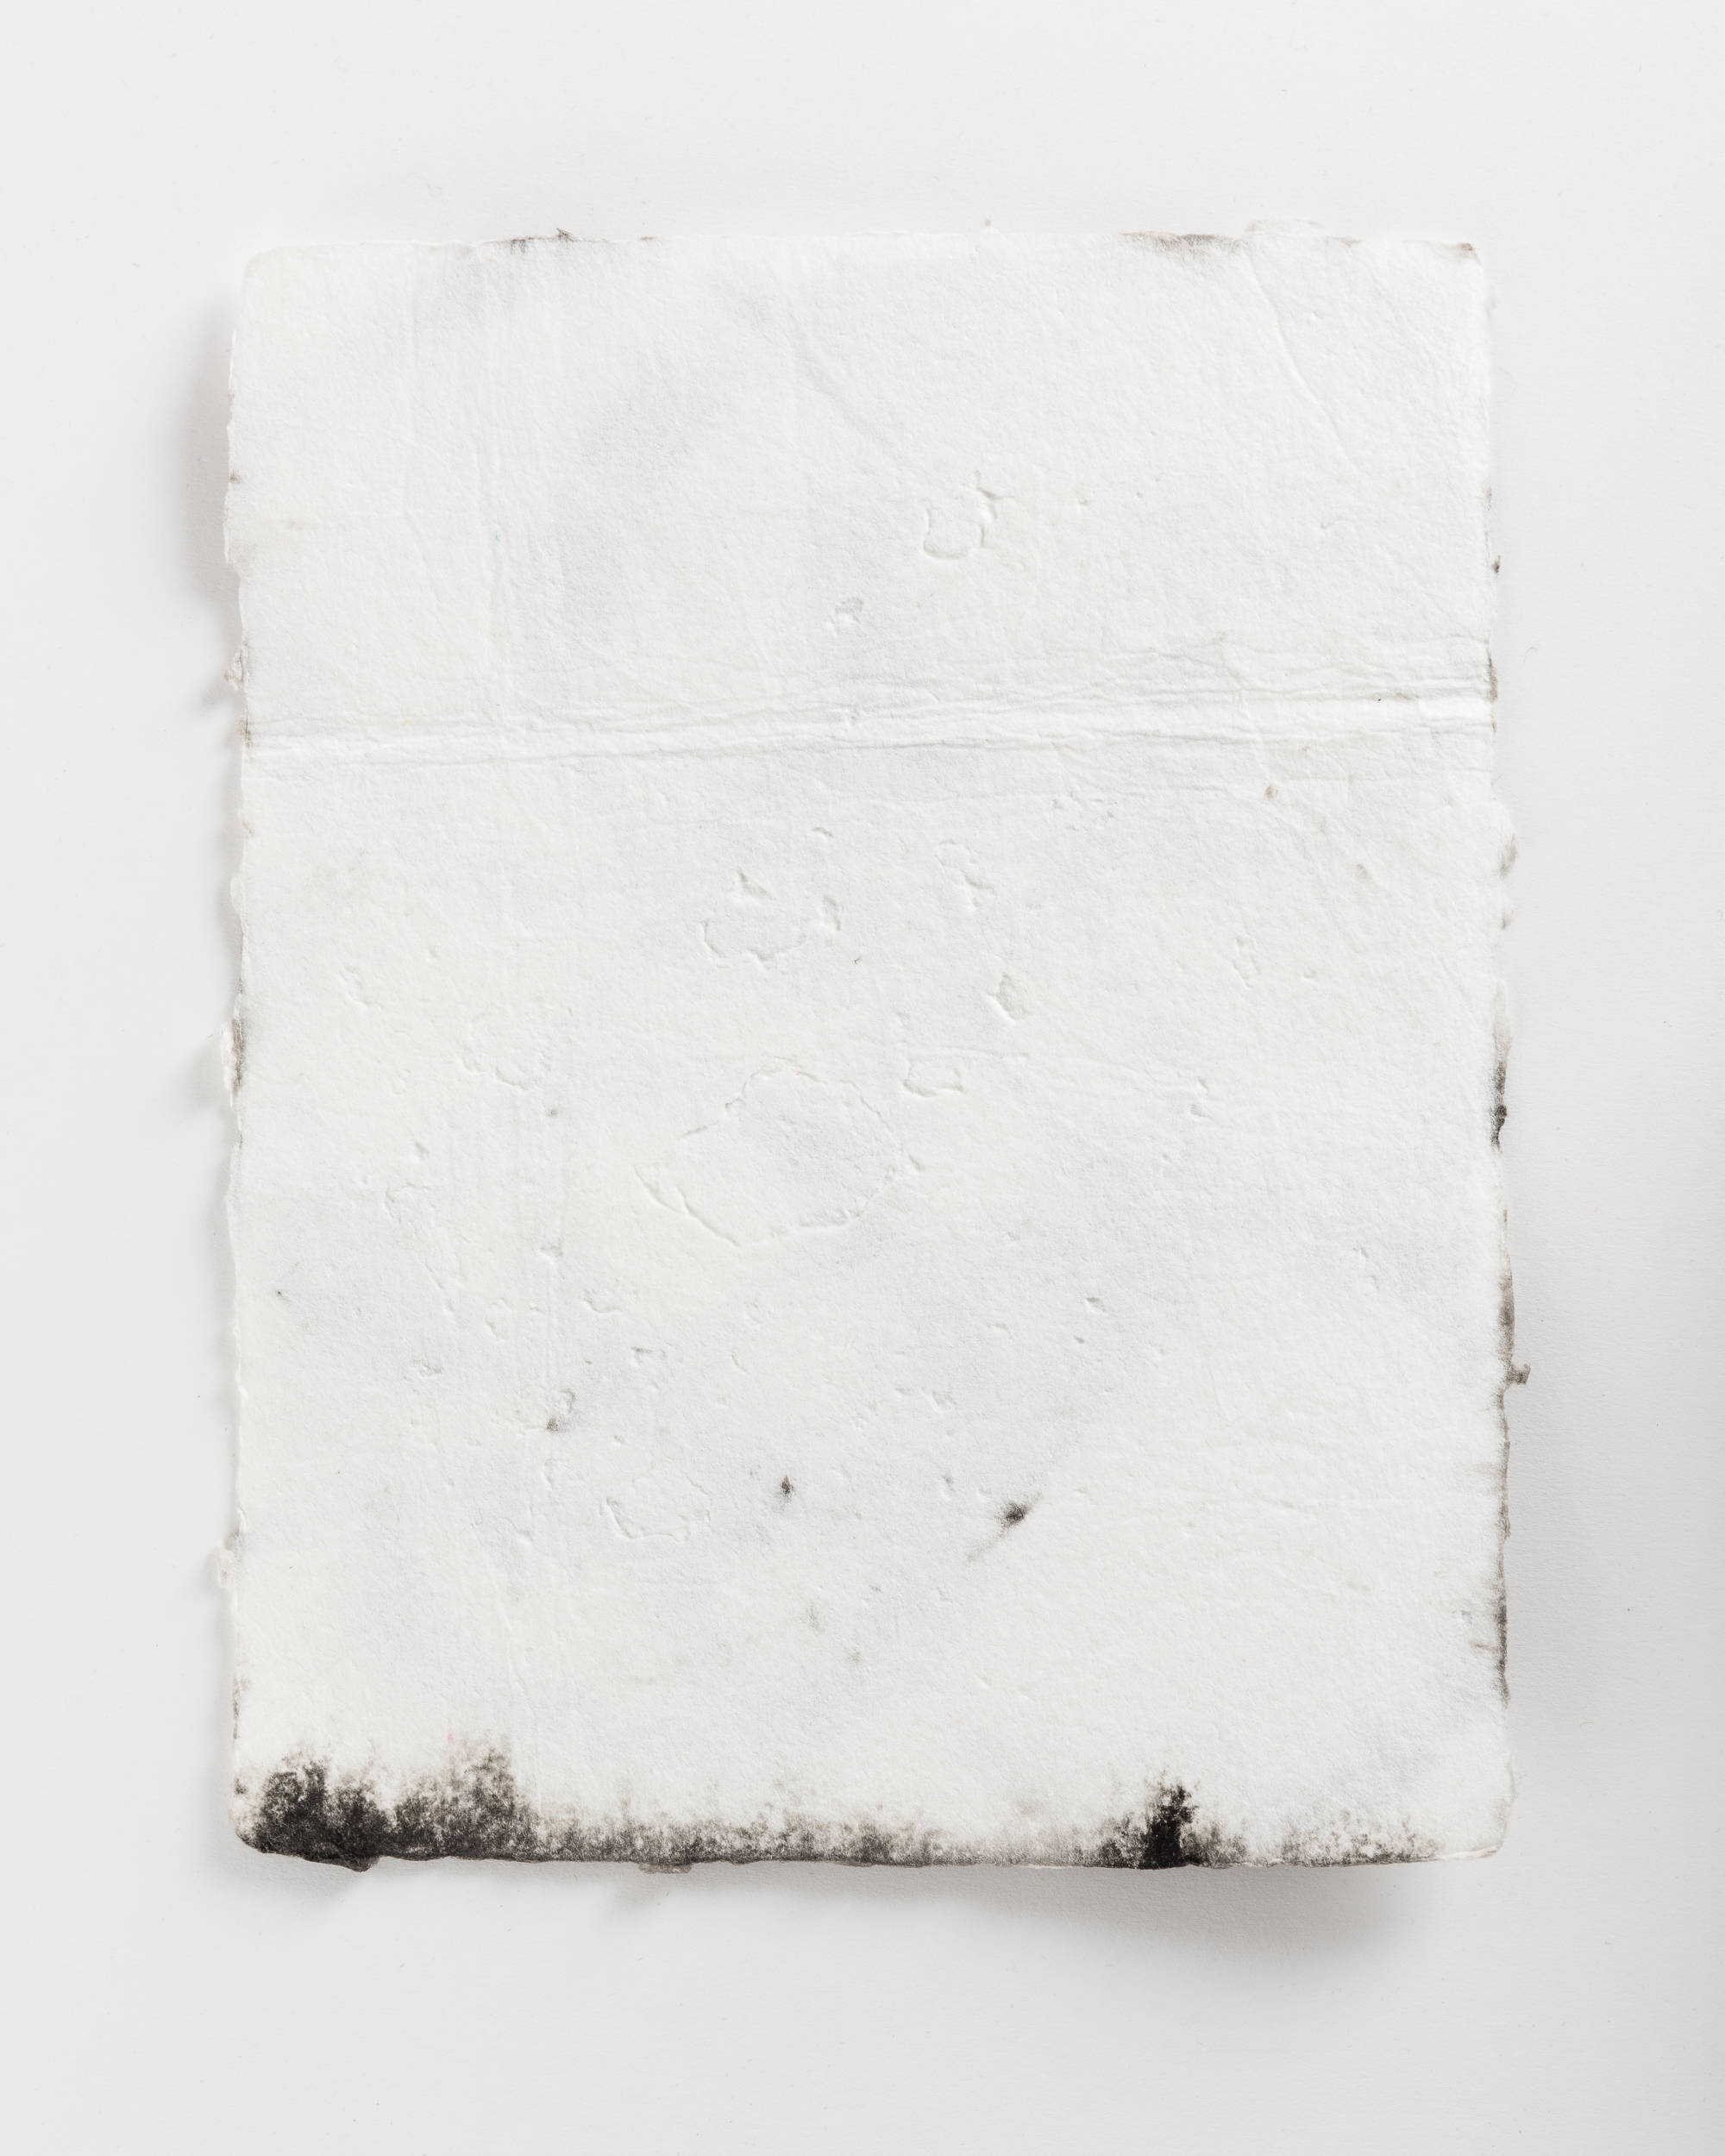 Handmade paper. Made by hydrating and beating cotton linter, and then forming 8x10 sheets onto a vacuum table and adding black pigment directly to the wet sheets.